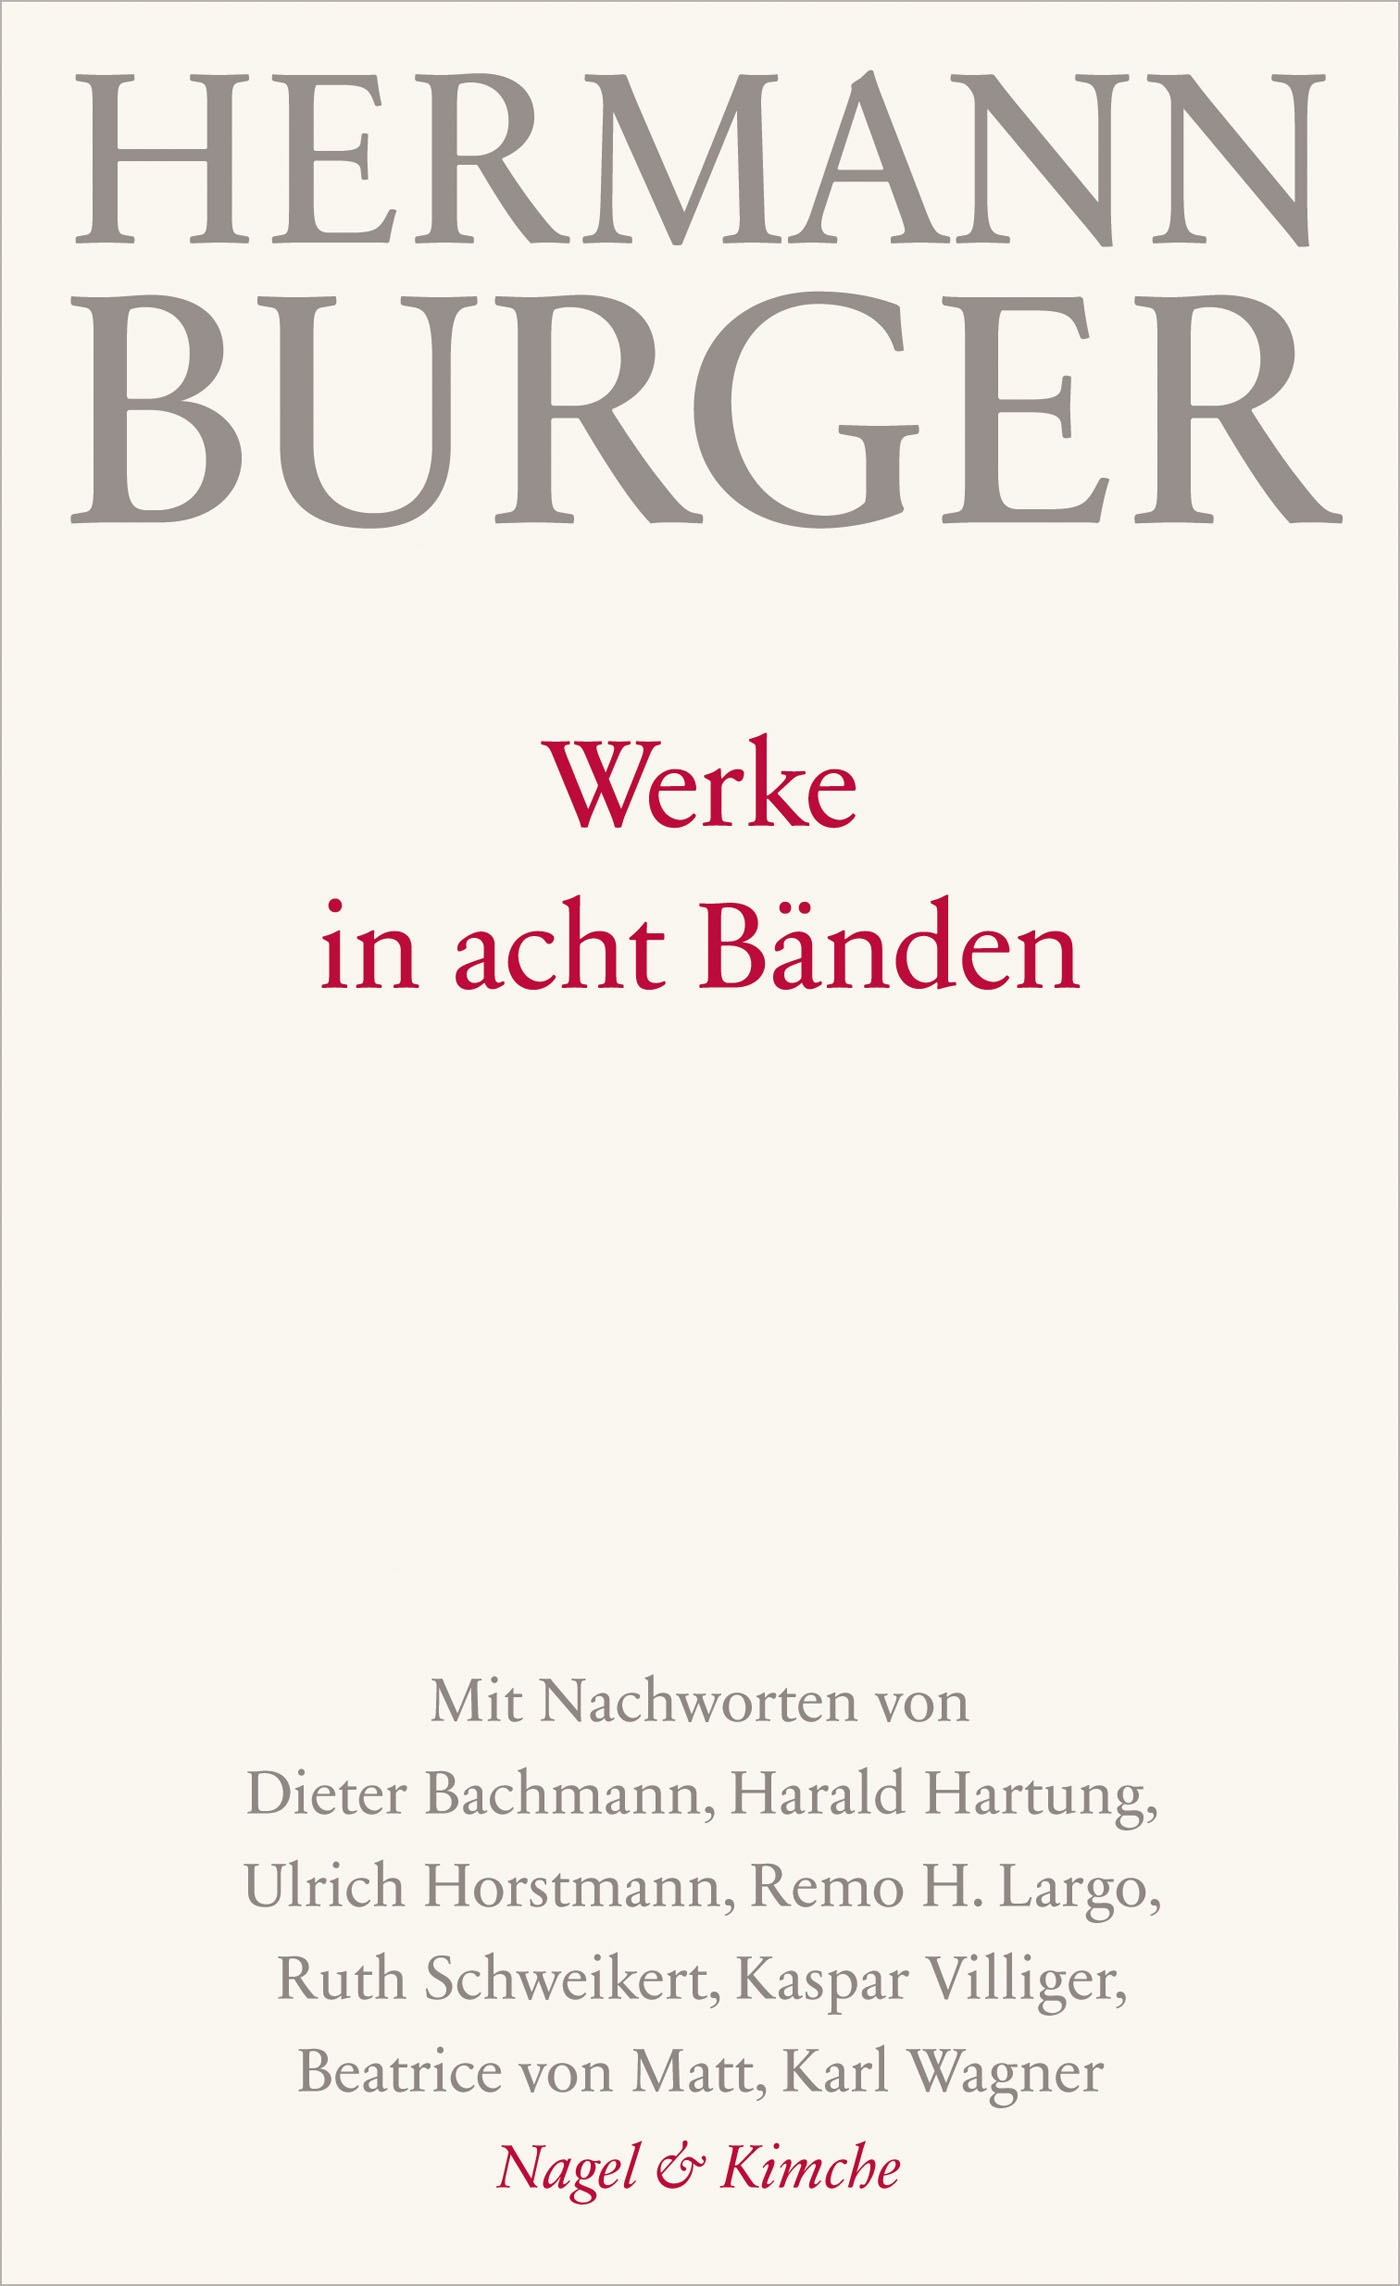 Werke in acht Bänden - Hermann Burger